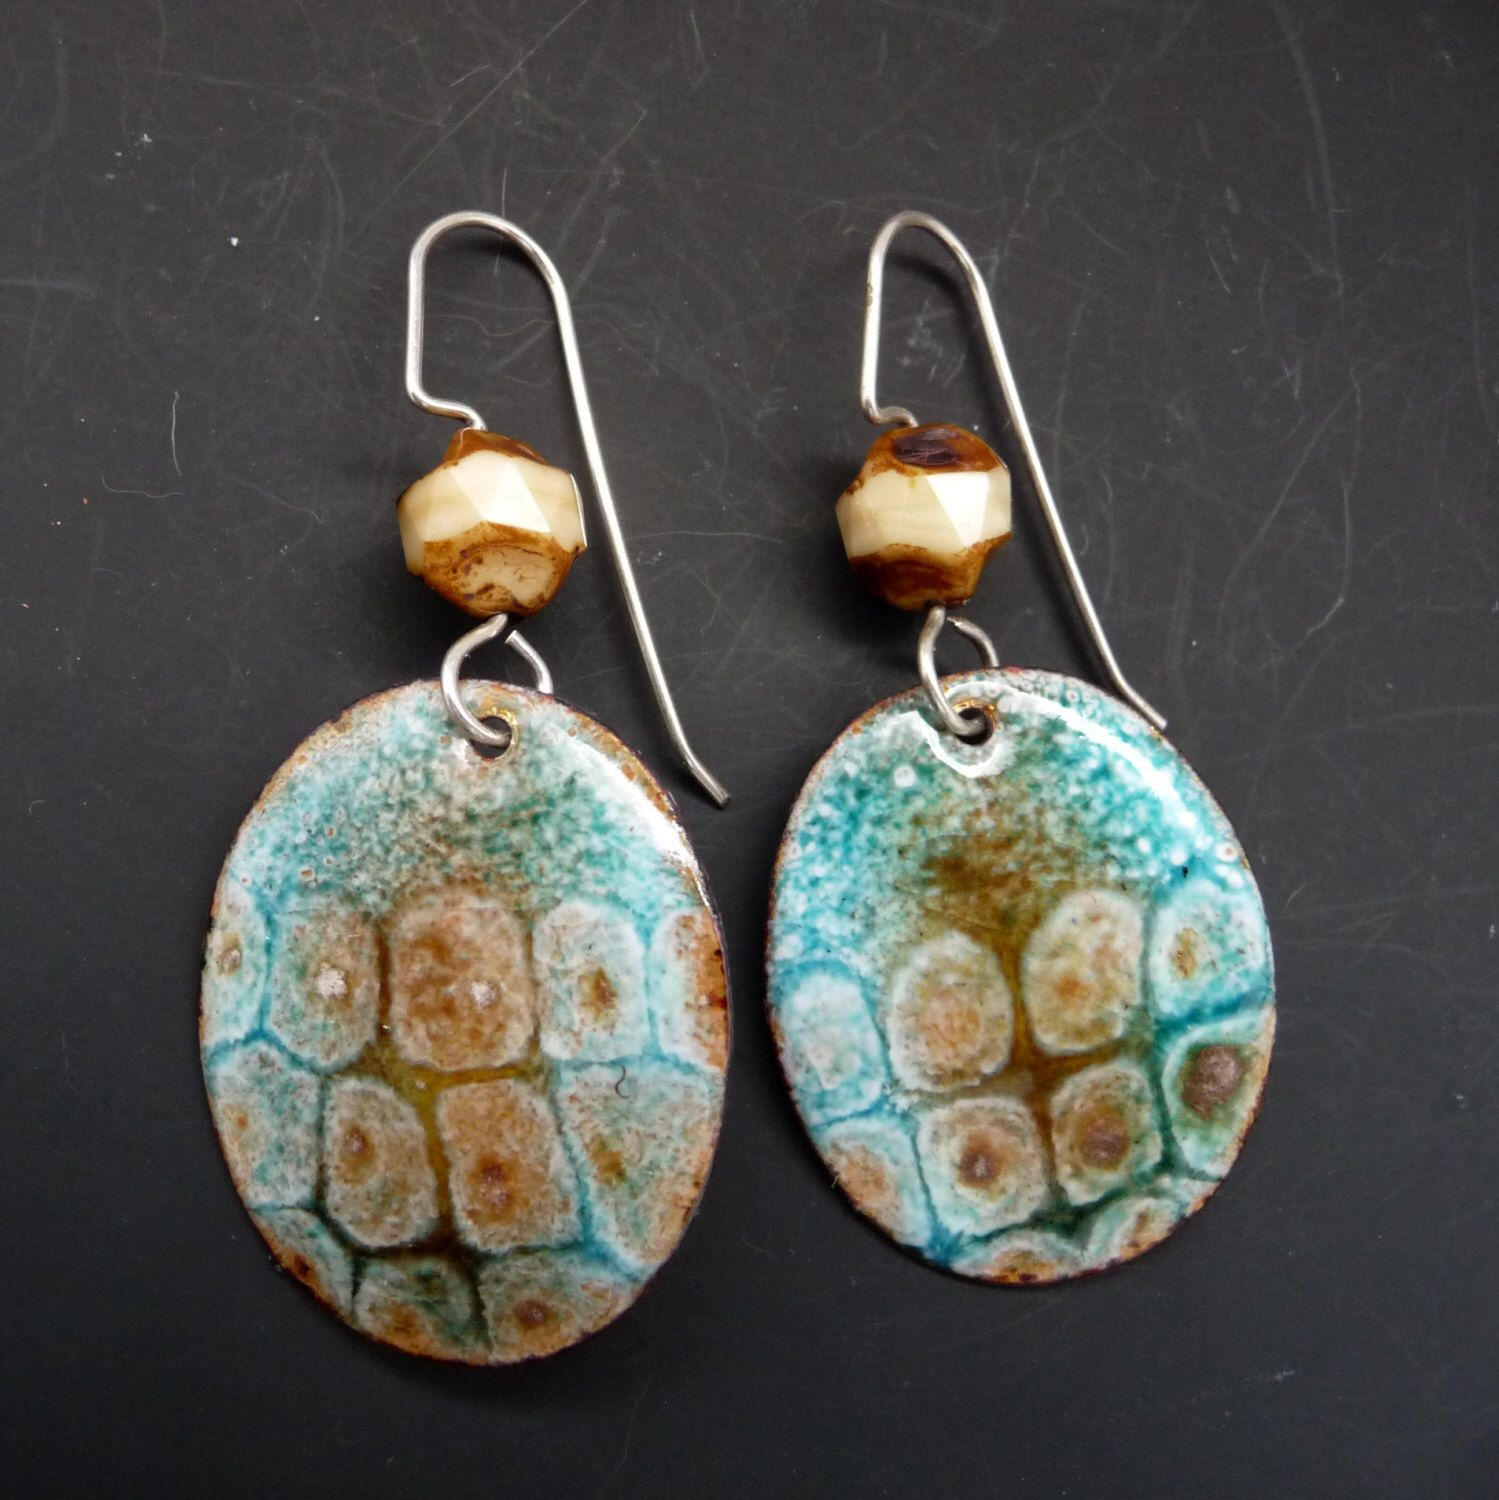 earrings sgraffito img product of kalaya jewlery metal sculpture steede enamel image